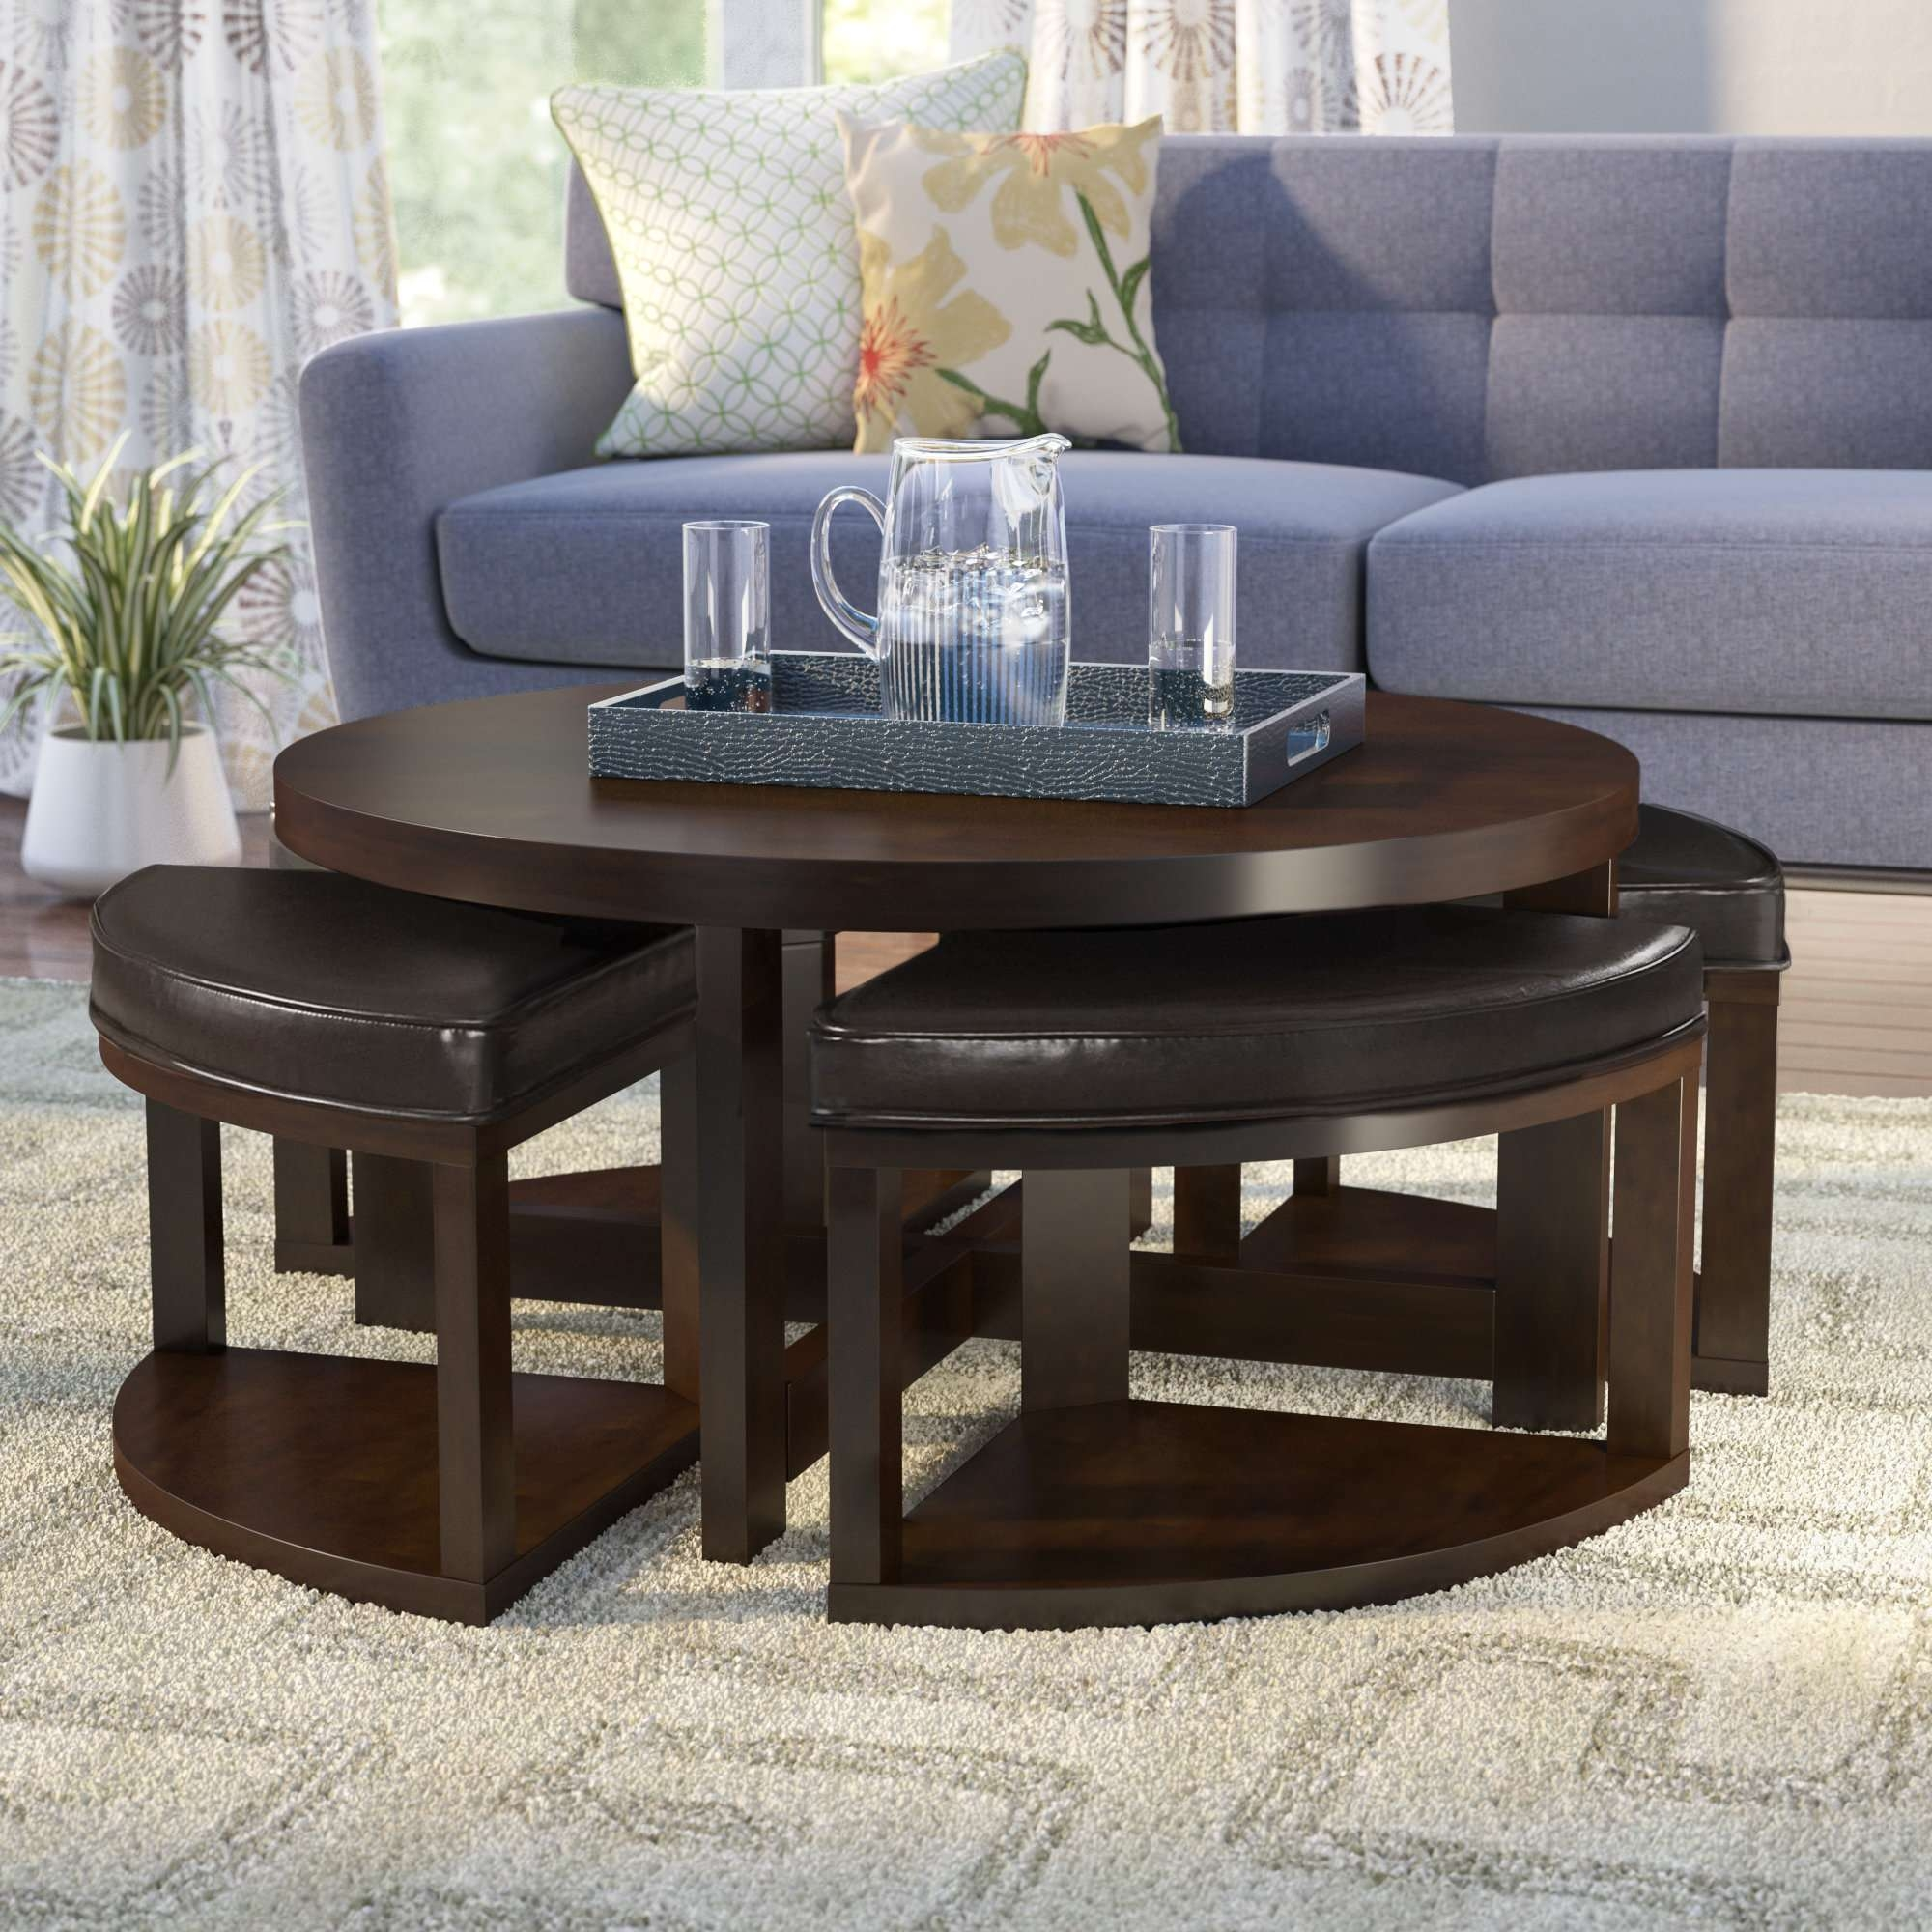 Most Popular Coffee Tables With Nesting Stools Throughout Latitude Run Swineford Coffee Table With 4 Nested Stool & Reviews (View 11 of 20)